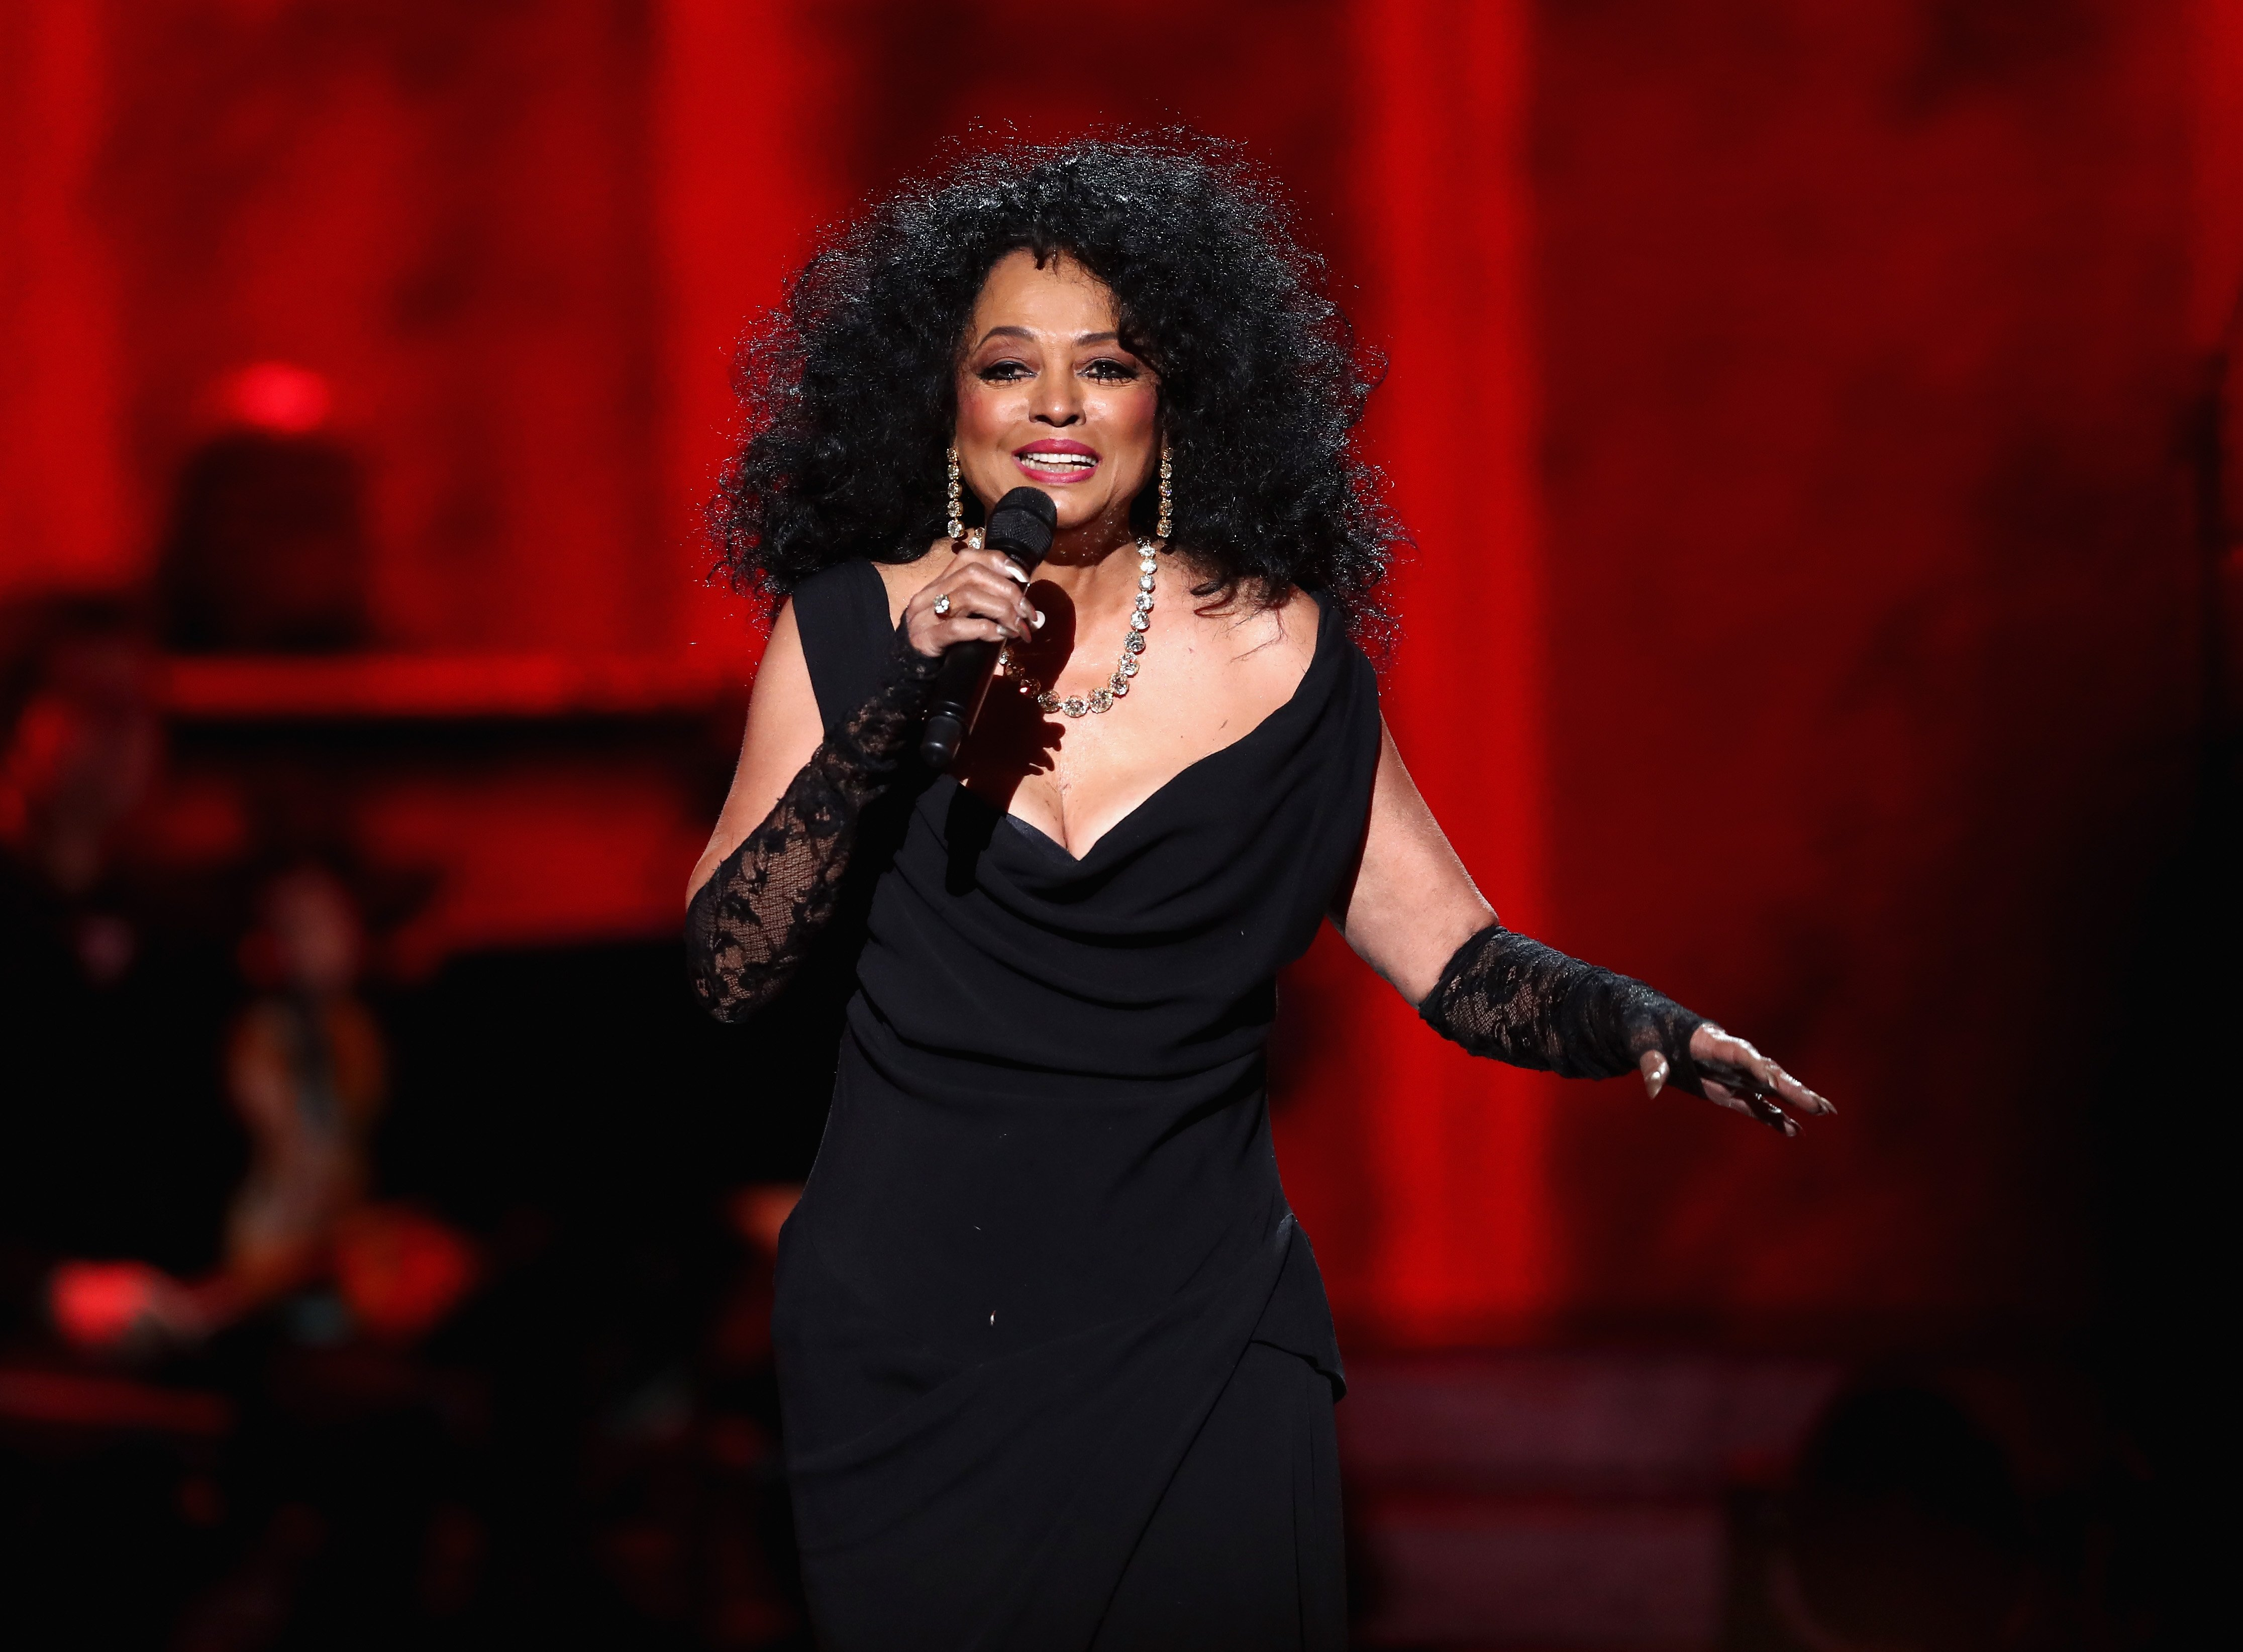 """Diana Ross performs onstage during """"Motown 60: A GRAMMY Celebration"""" at Microsoft Theater on February 12, 2019.   Photo: Getty Images"""